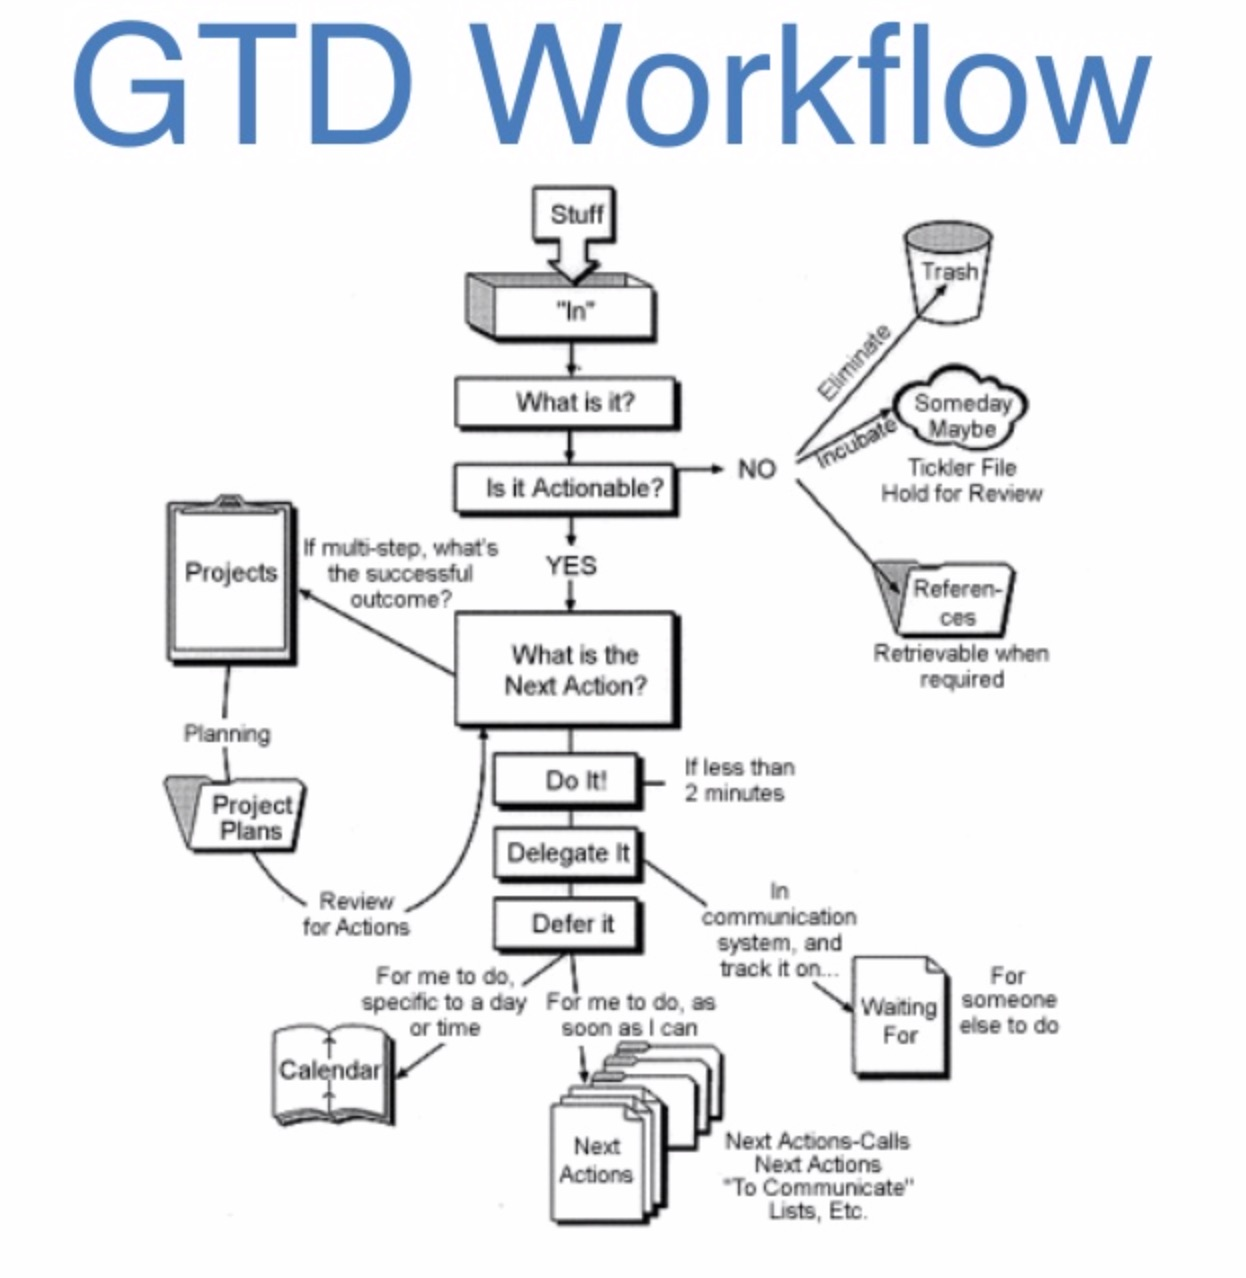 The CRM is made in way to that you should us the GTD - Getting Things Done® by  David Allen's to help run your business smoothly while you grow without being overwhelmed by projects.